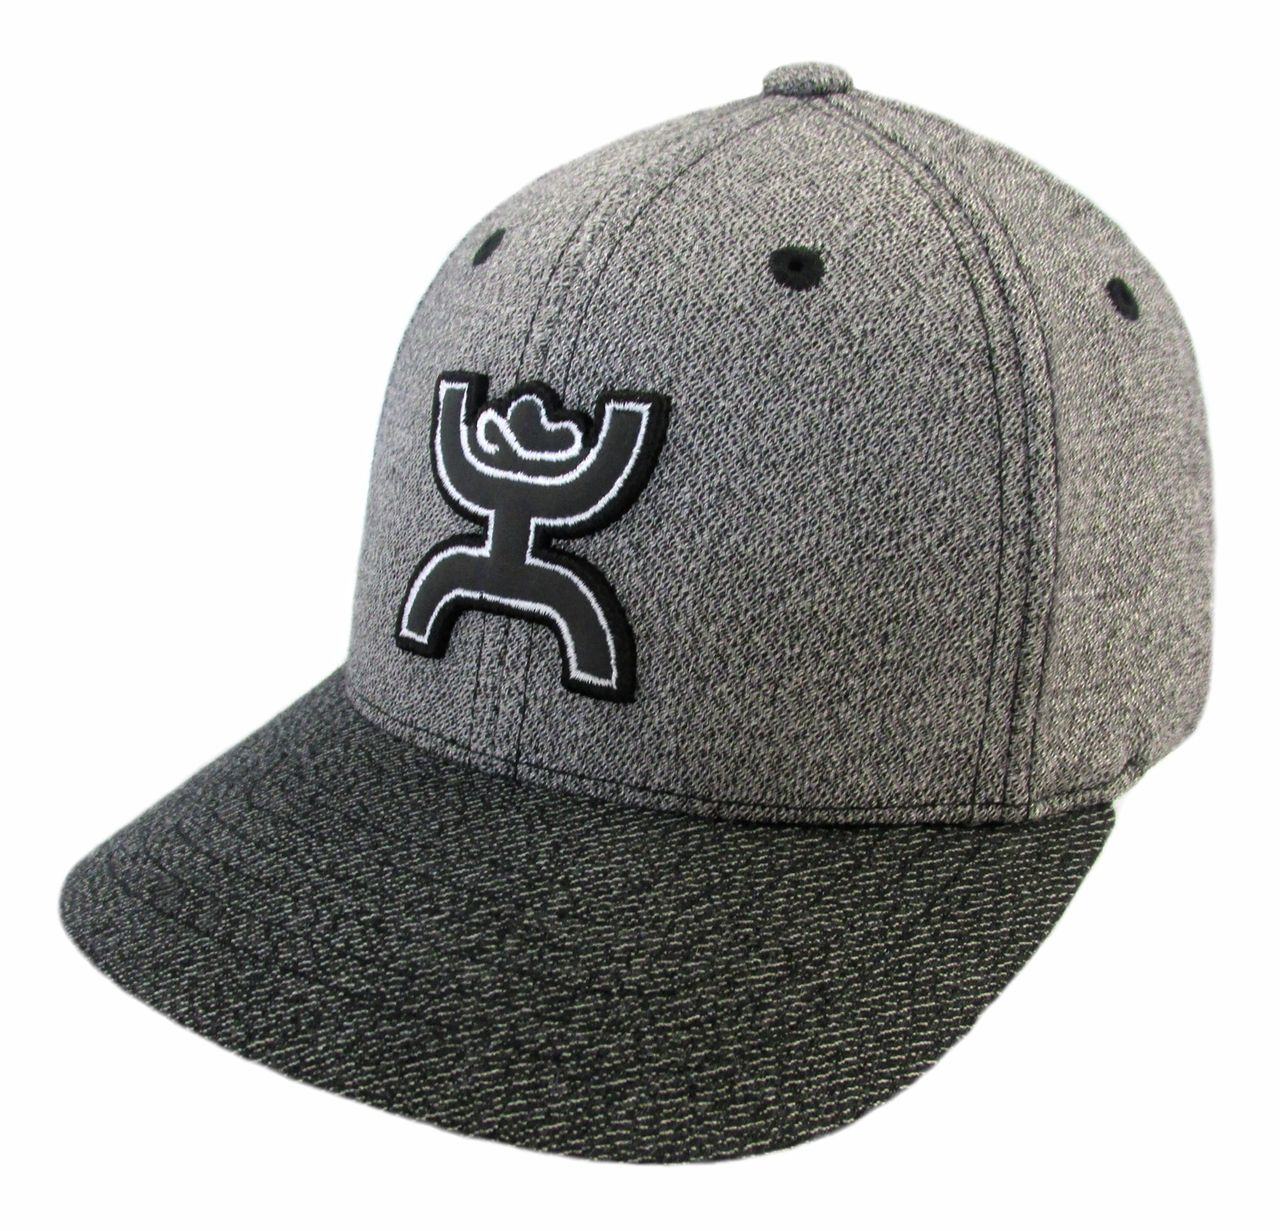 big sale 653a2 60bc1 New arrival at Billy s Western Wear- HOOey Style 1549GYBK Grey Black with  reflective HOOey logo.